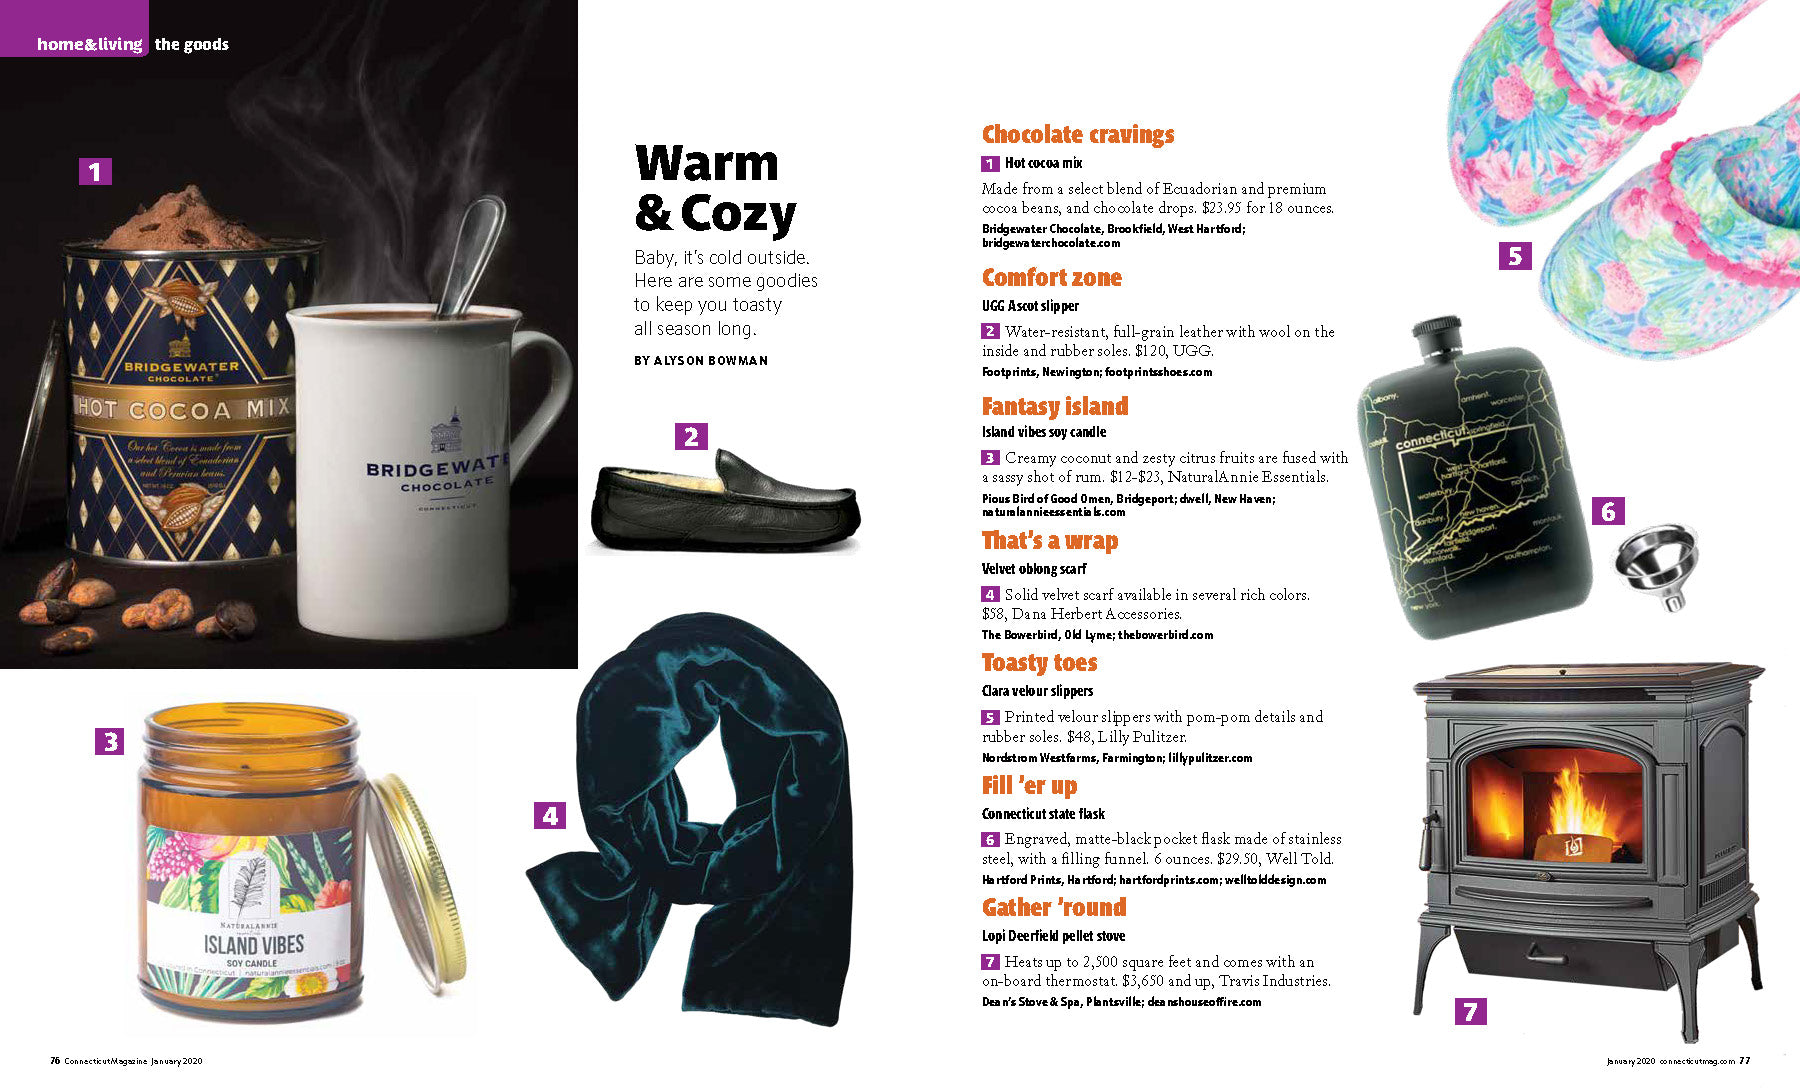 connecticut magazine naturalannie essentials candle feature